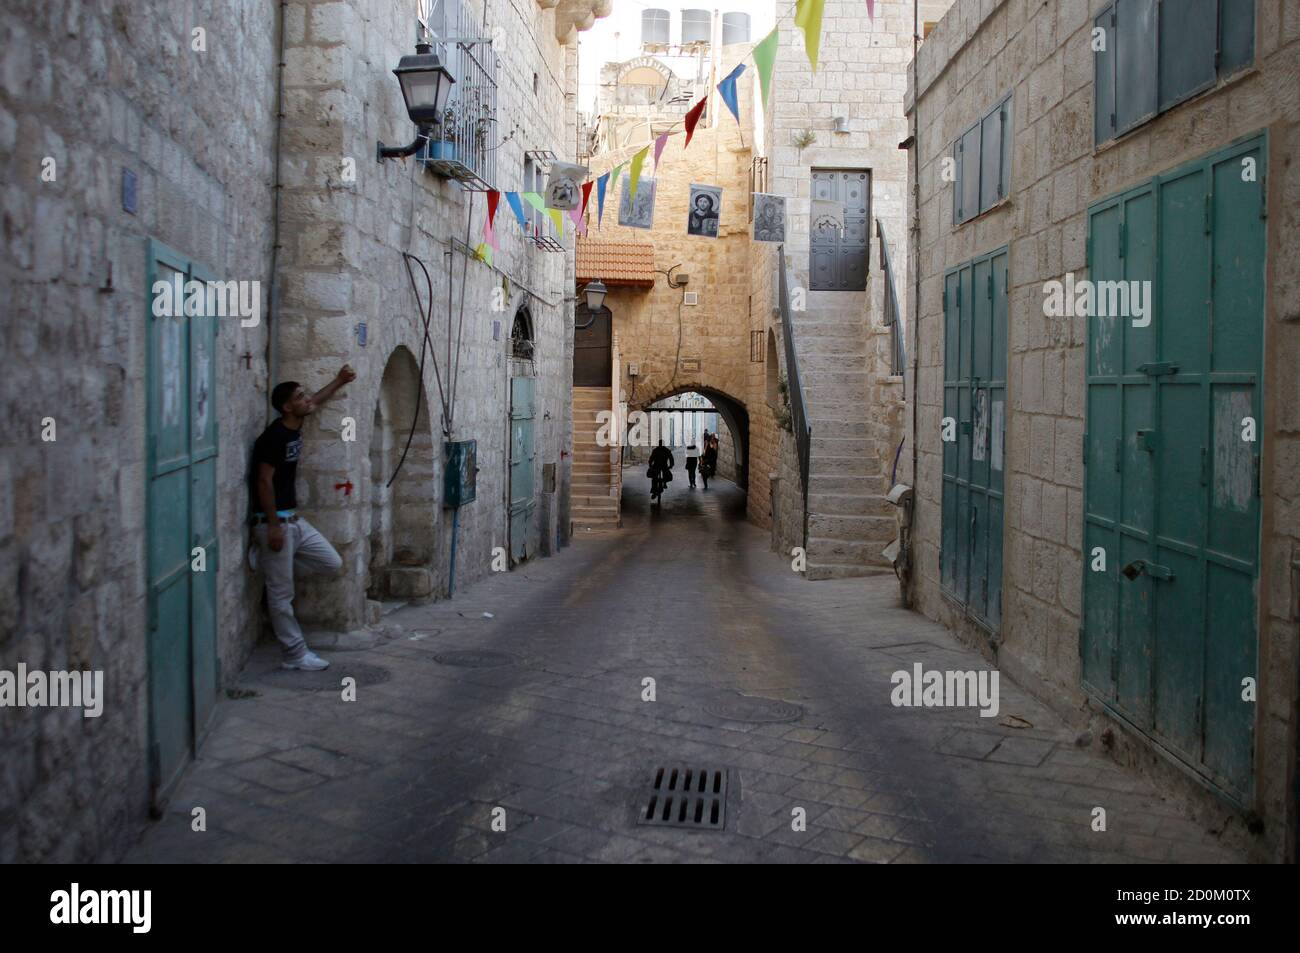 A Palestinian stands on a section of the Pilgrimage Route, the path which tradition says Joseph and Mary took into the West Bank city of Bethlehem in their trek from Nazareth some 2,000 years ago, June 28, 2012. Palestinians hope to persuade UNESCO this weekend to declare parts of Bethlehem, including the Pilgrimage Route, and its Church of the Nativity endangered World Heritage sites in order to expedite funding for repairs. REUTERS/Ammar Awad (WEST BANK - Tags: POLITICS RELIGION) Stock Photo